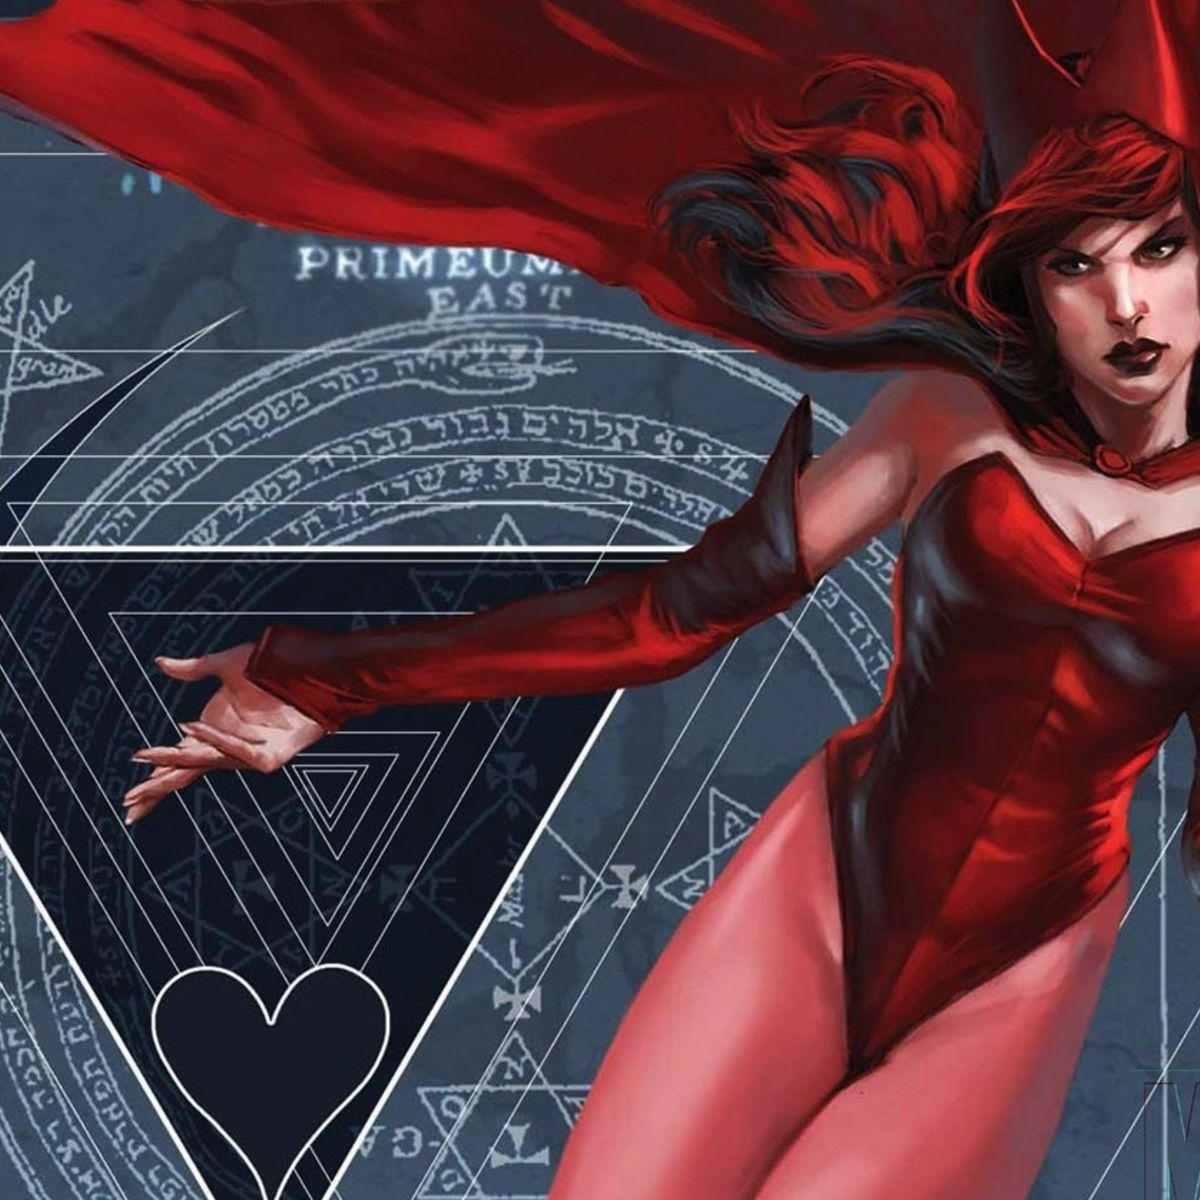 Scarlet-Witch-marvel-comics-4206679-1280-878.jpg